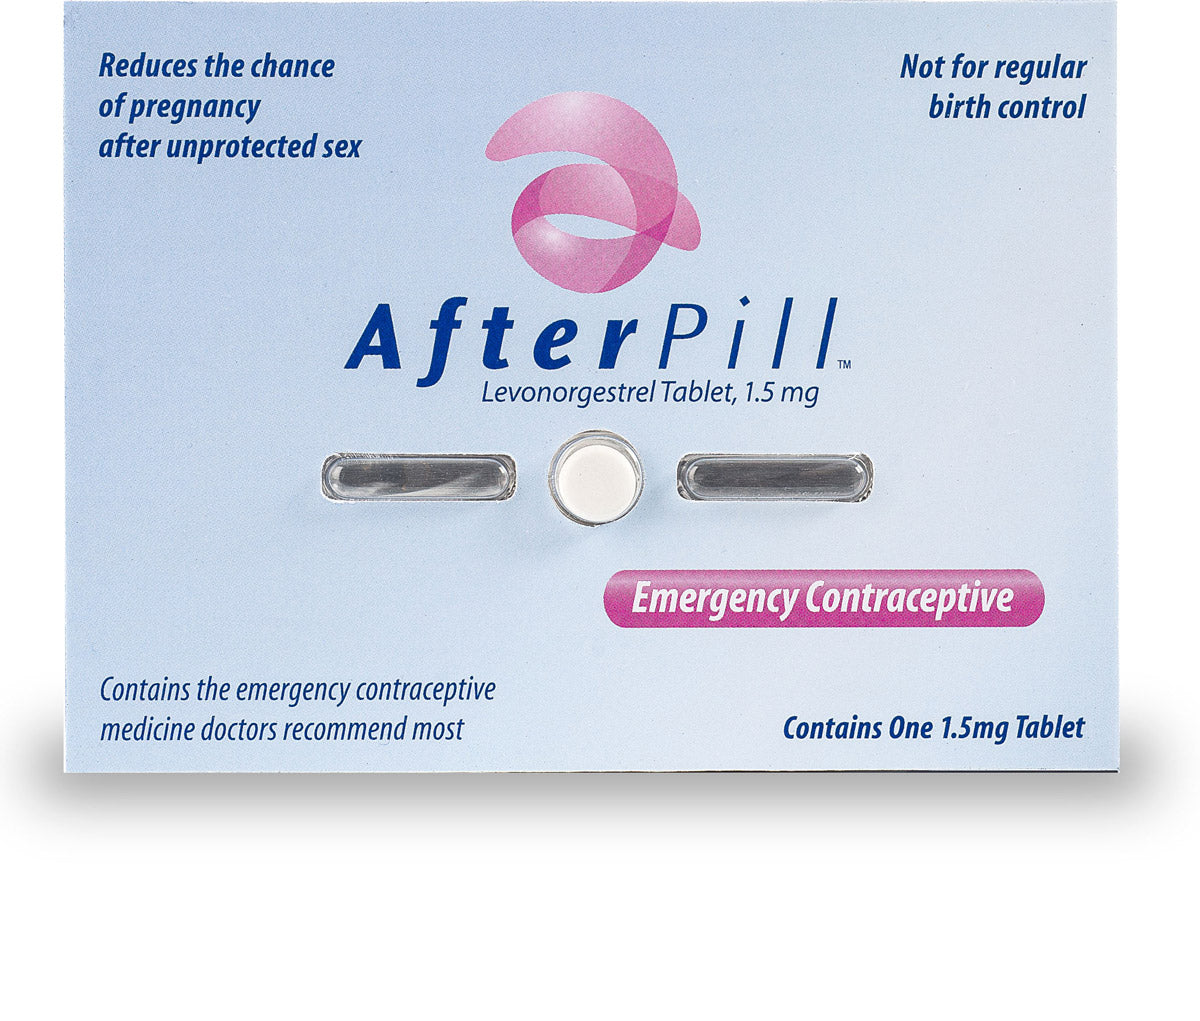 AfterPill Product Packaging